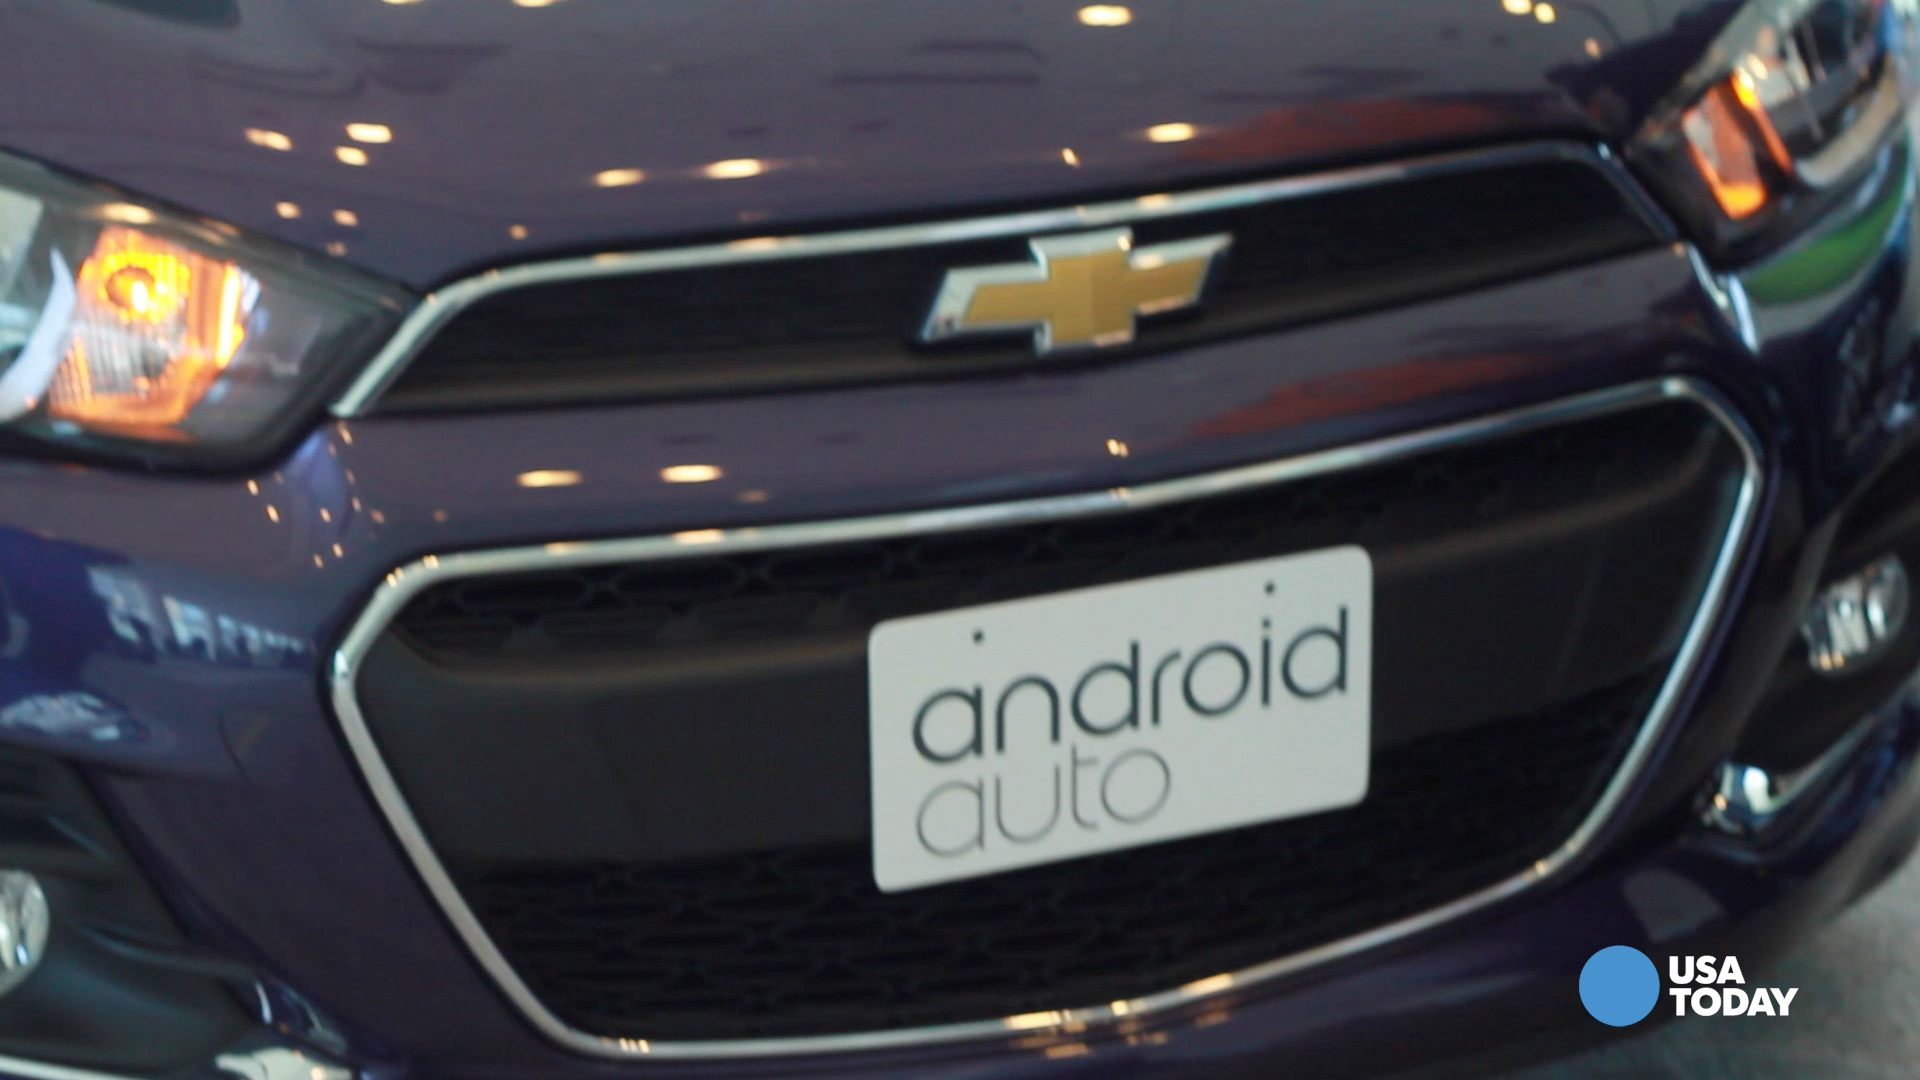 Google connects cars with Android Auto